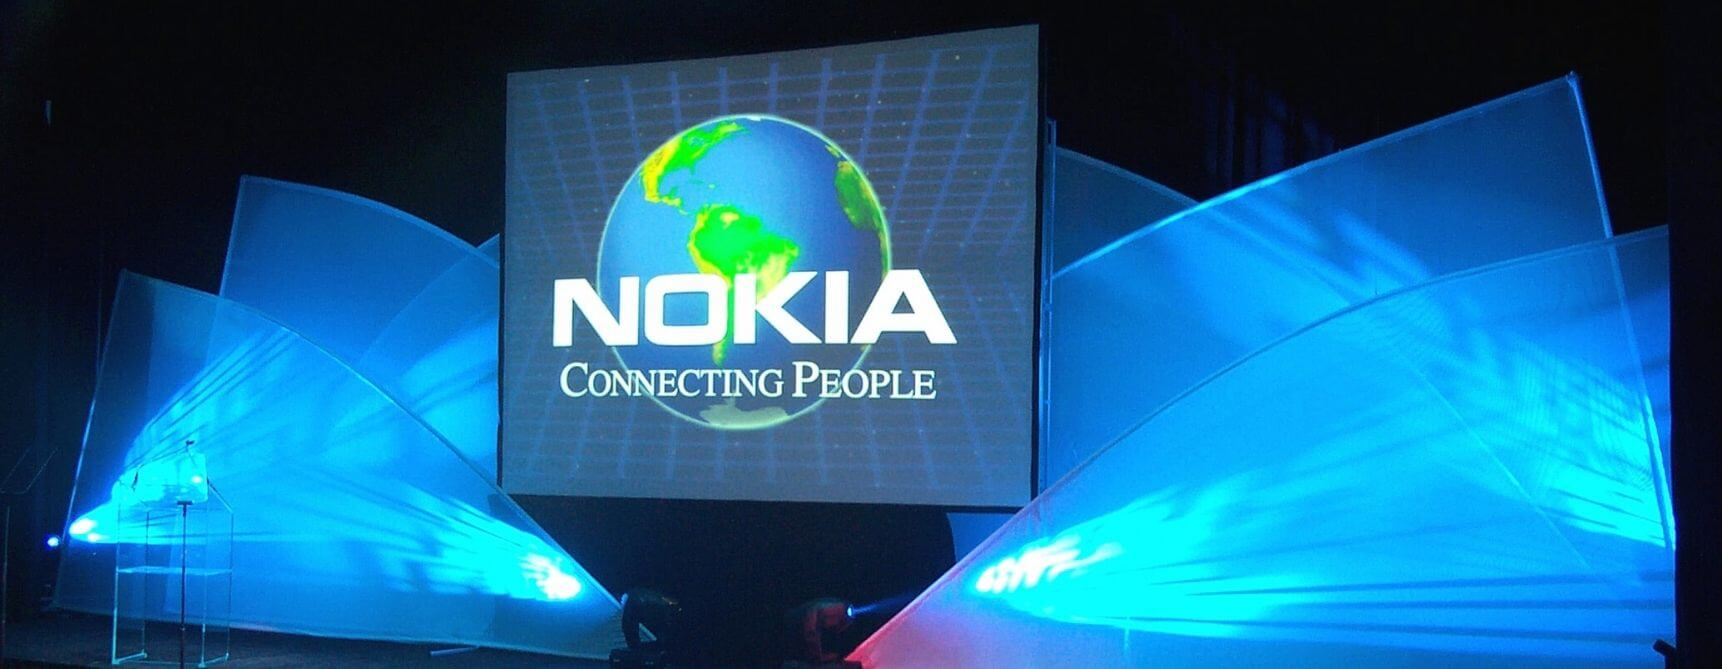 9 Nokia Corporate Event